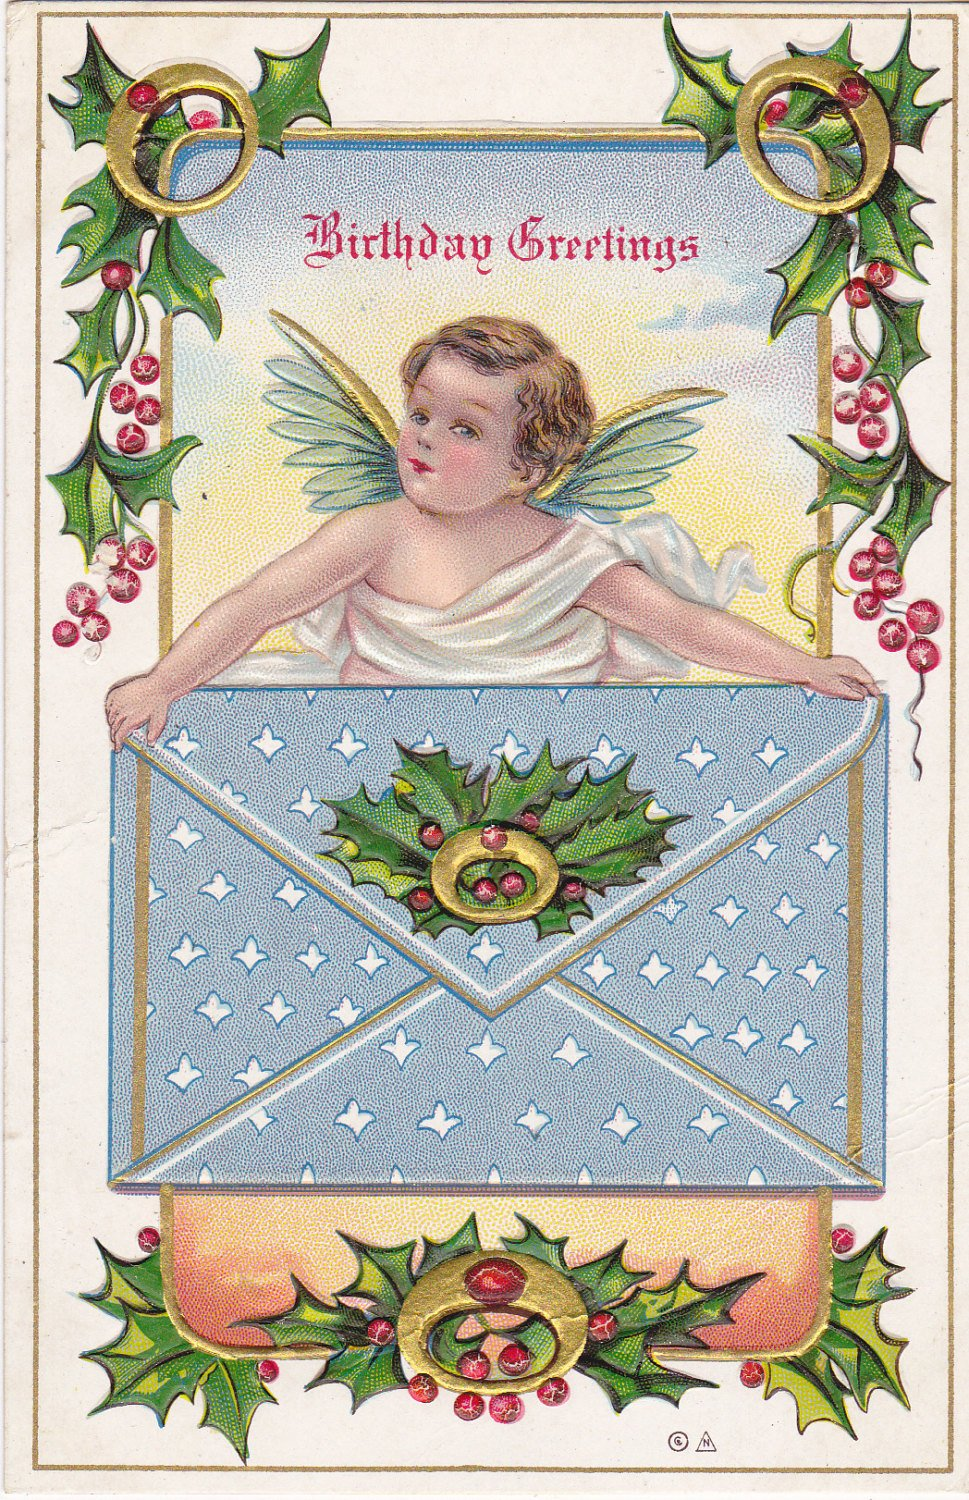 Christmas angel 1900s antique postcard christmas birthday winter christmas angel 1900s antique postcard christmas birthday winter decor december birthday cherub art birthday series used izmirmasajfo